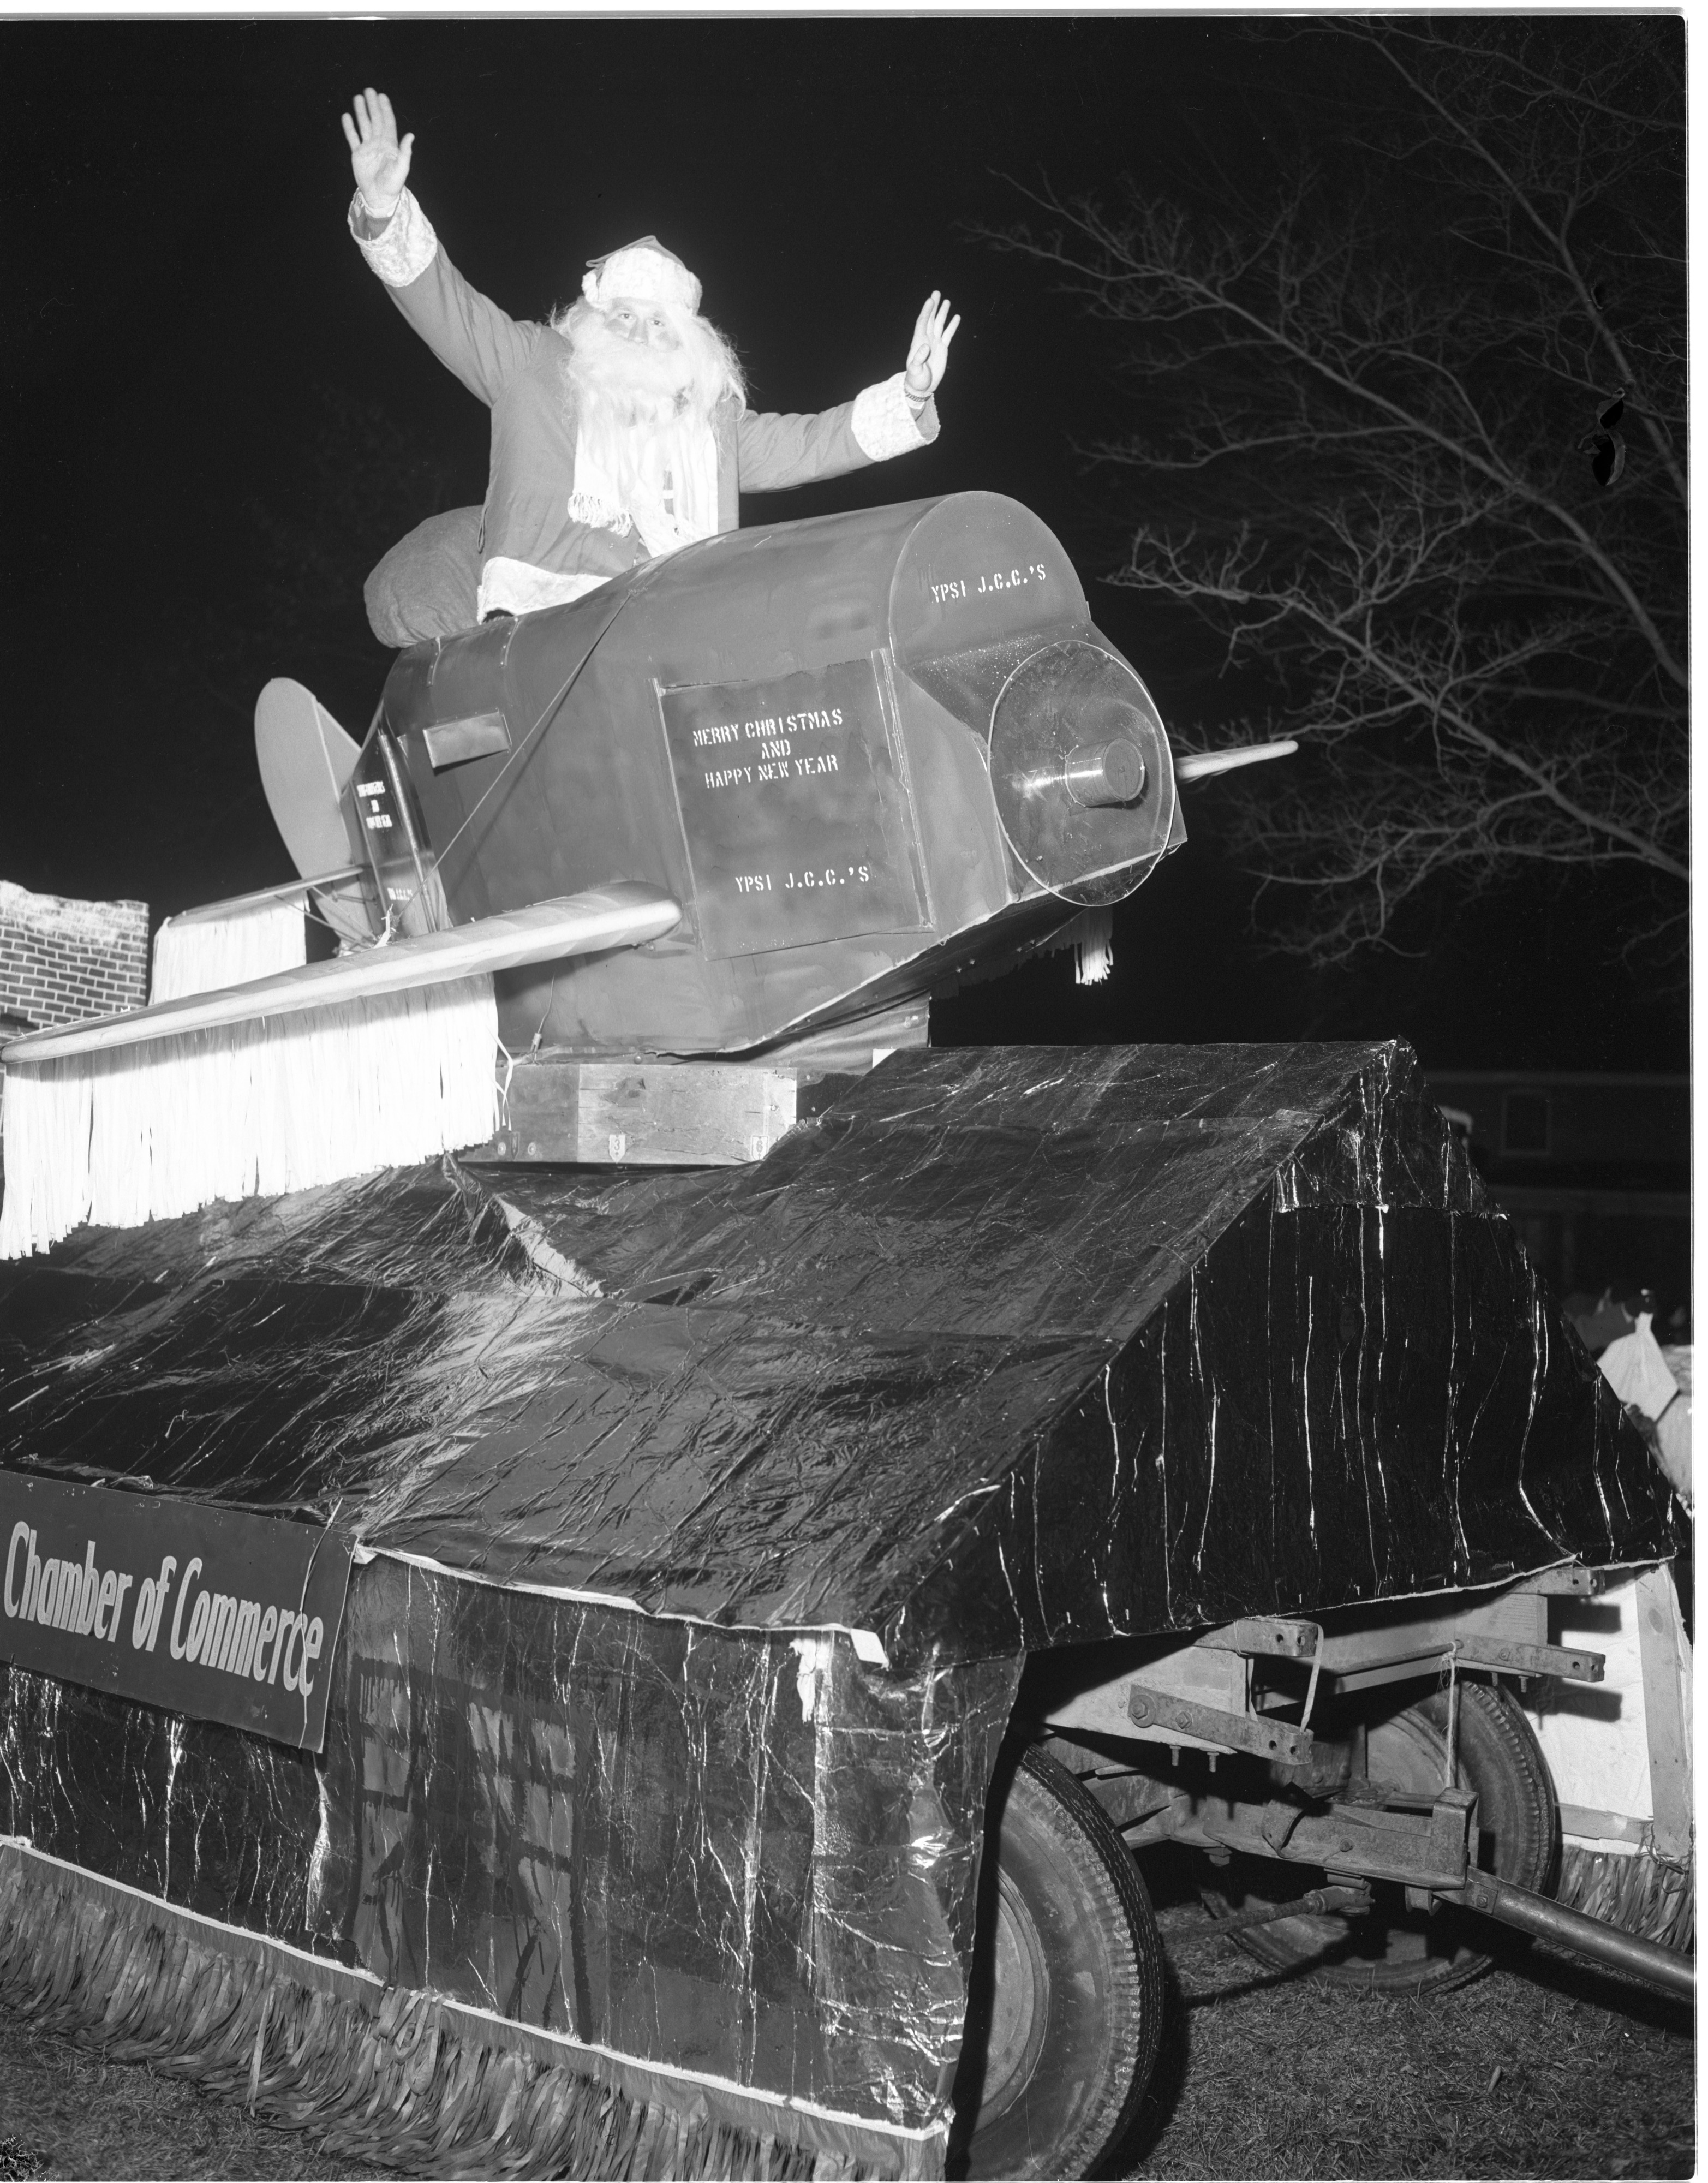 Santa Arrives By Plane In The Annual Ypsilanti Christmas Parade, December 1956 image